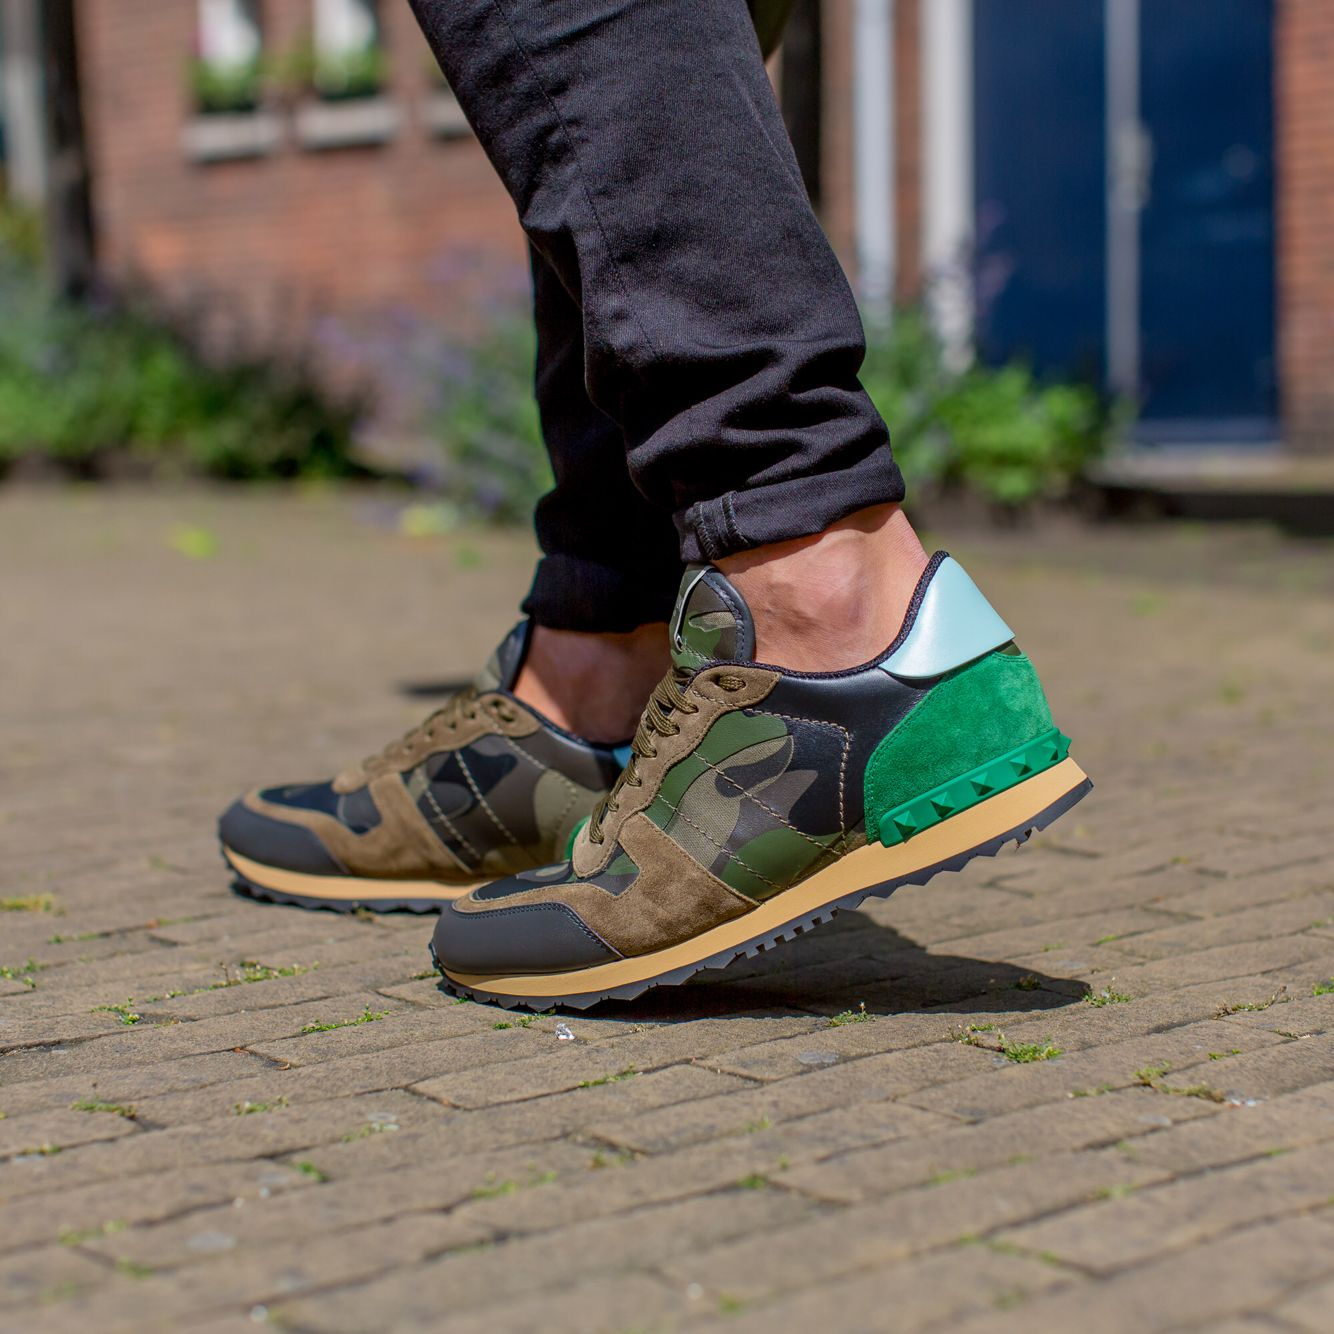 d664758bea167 VALENTINO | NEW ARRIVALS | DERODELOPER.COM The Valentino rockrunner  camouflage sneaker for the fall / winter 2016 collection. Available Online  & In Store ...